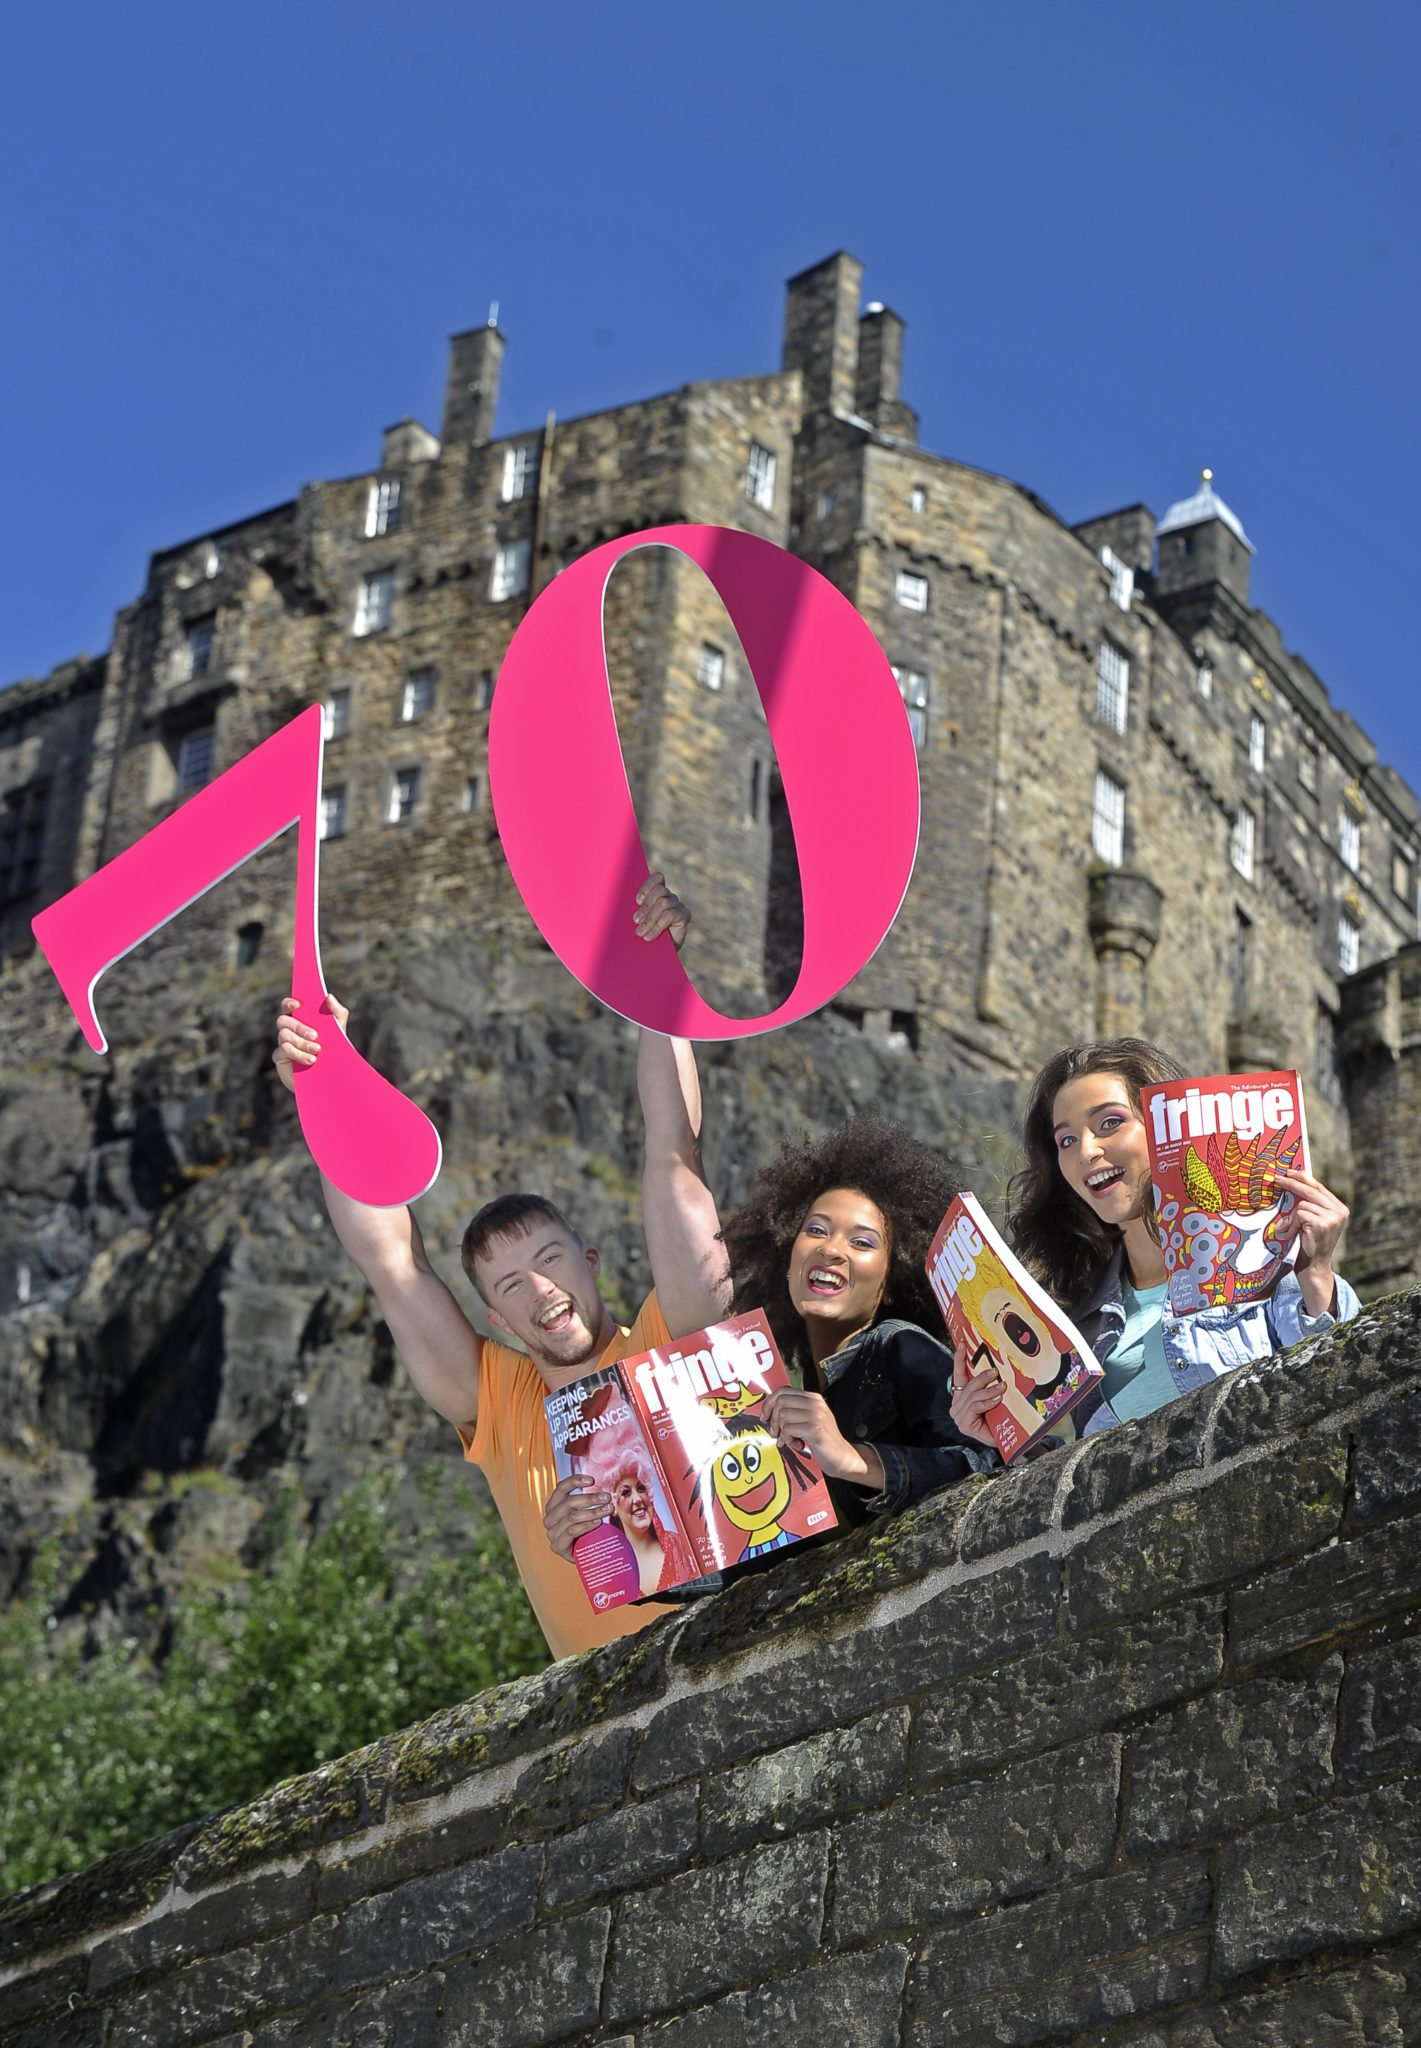 Get the most out of the Edinburgh Festival Fringe